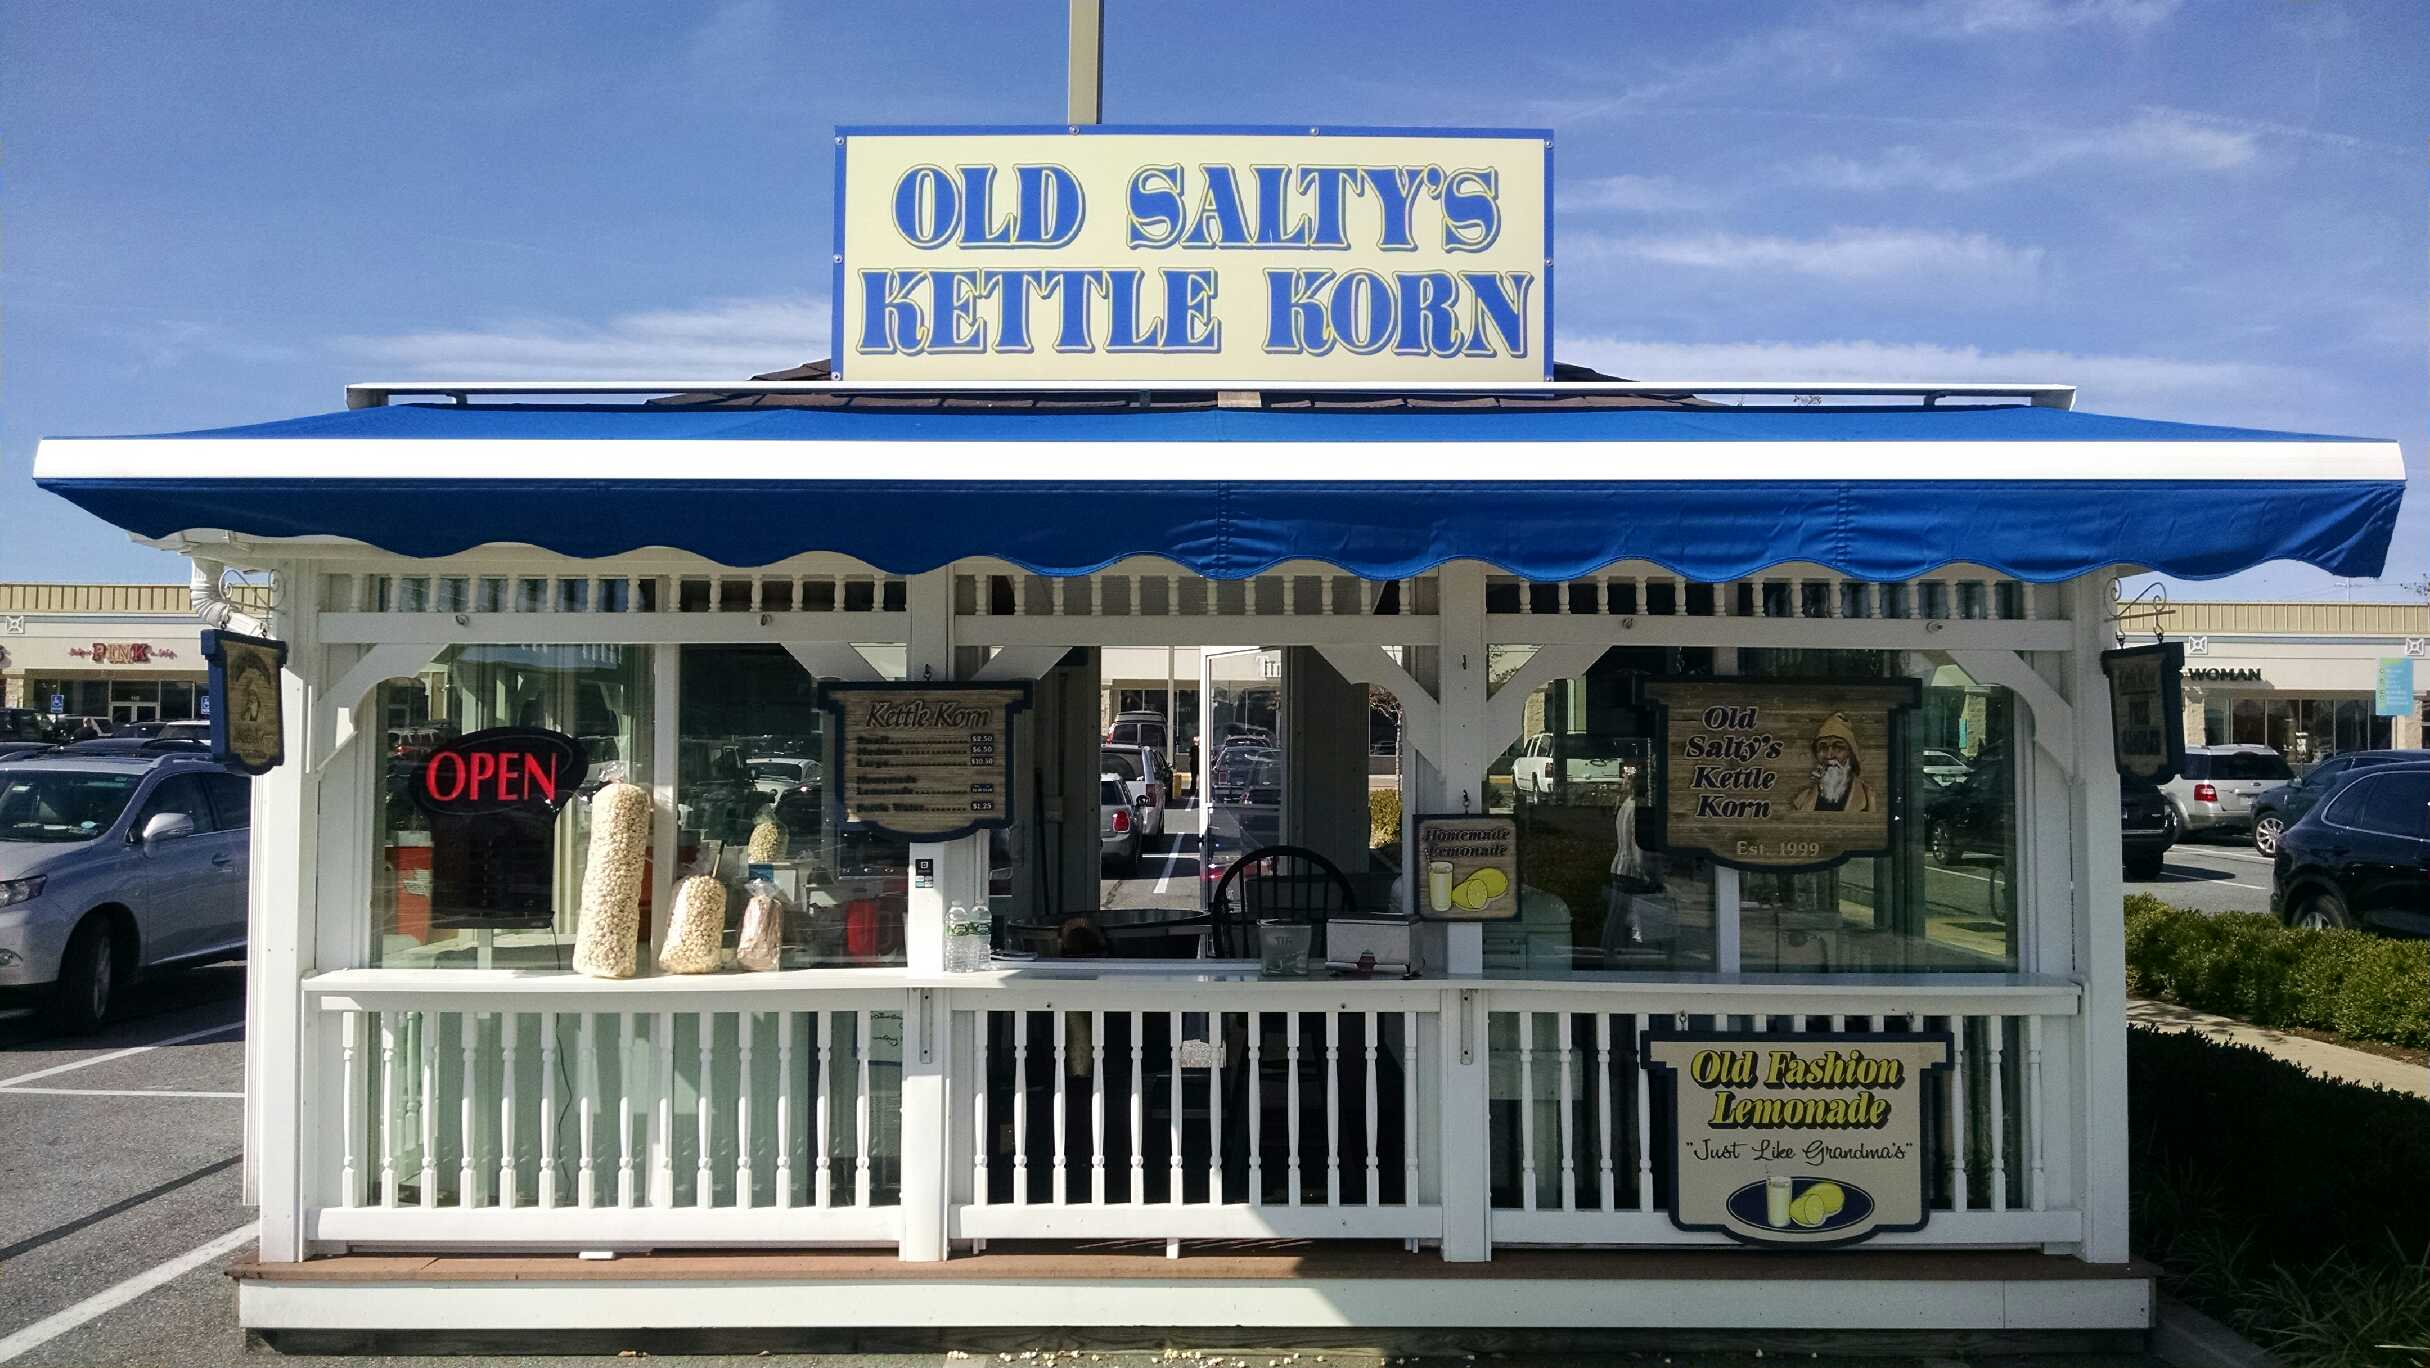 Old Salty's Home – Old Salty's Kettle Korn